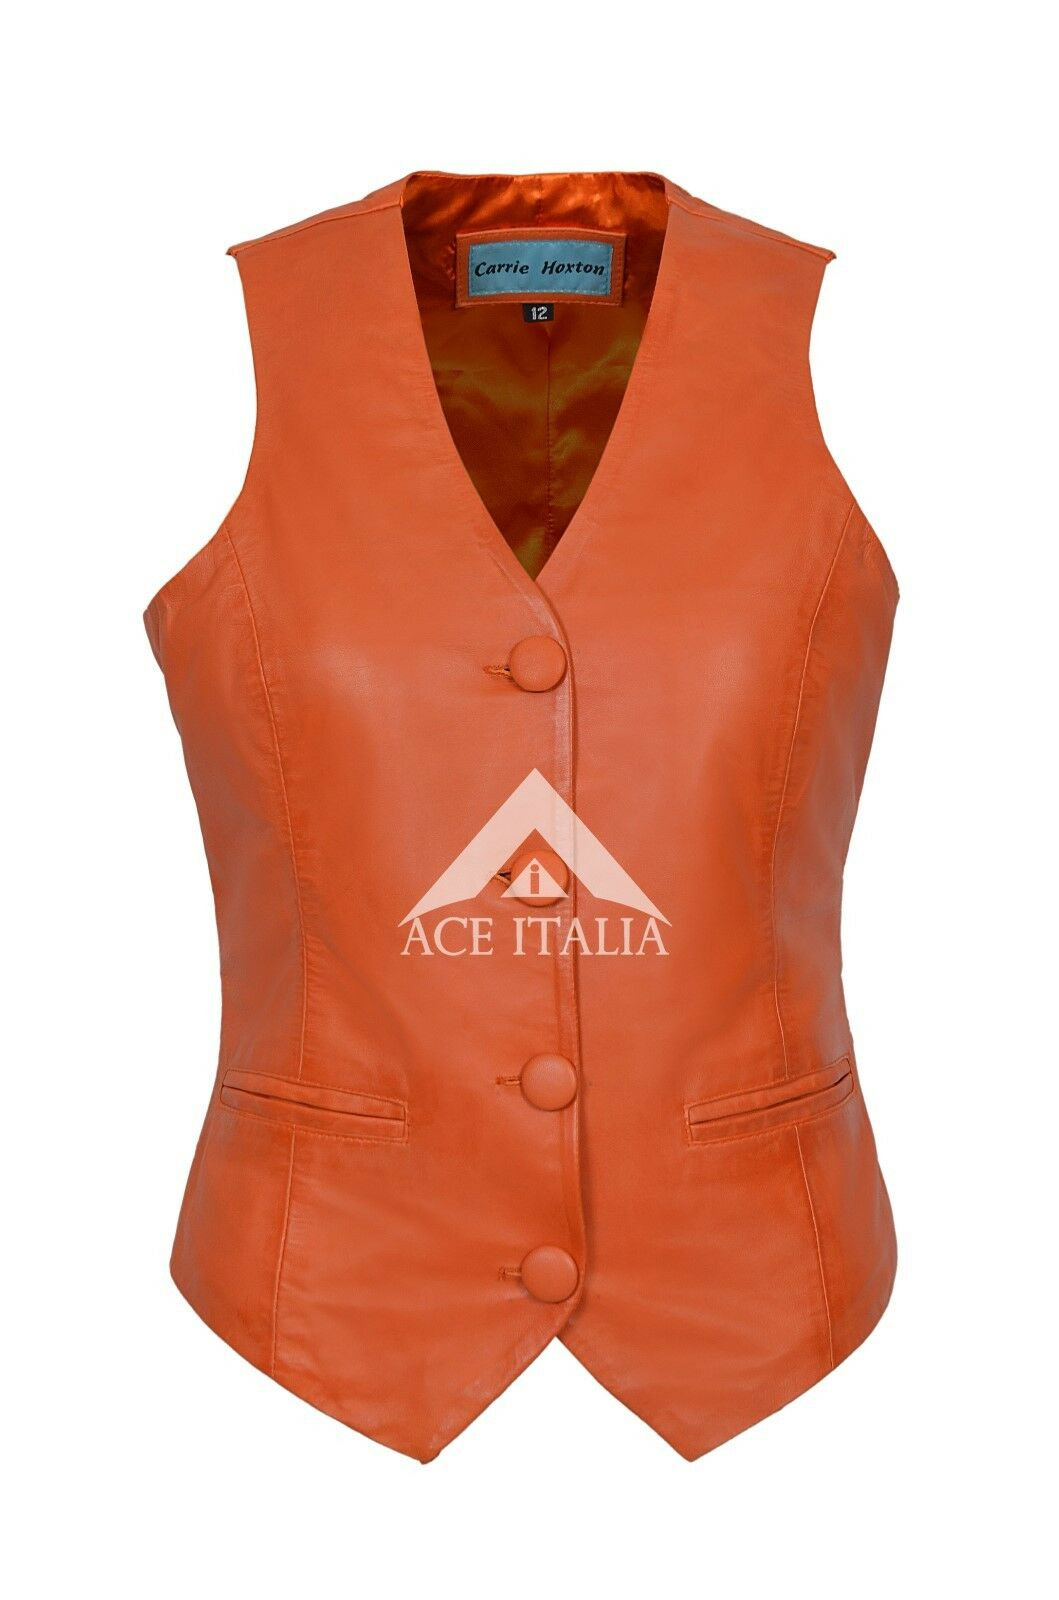 Ladies Leather WAISTCAOT orange Casual Party Fashion Deluxe 100% REAL NAPA 5701